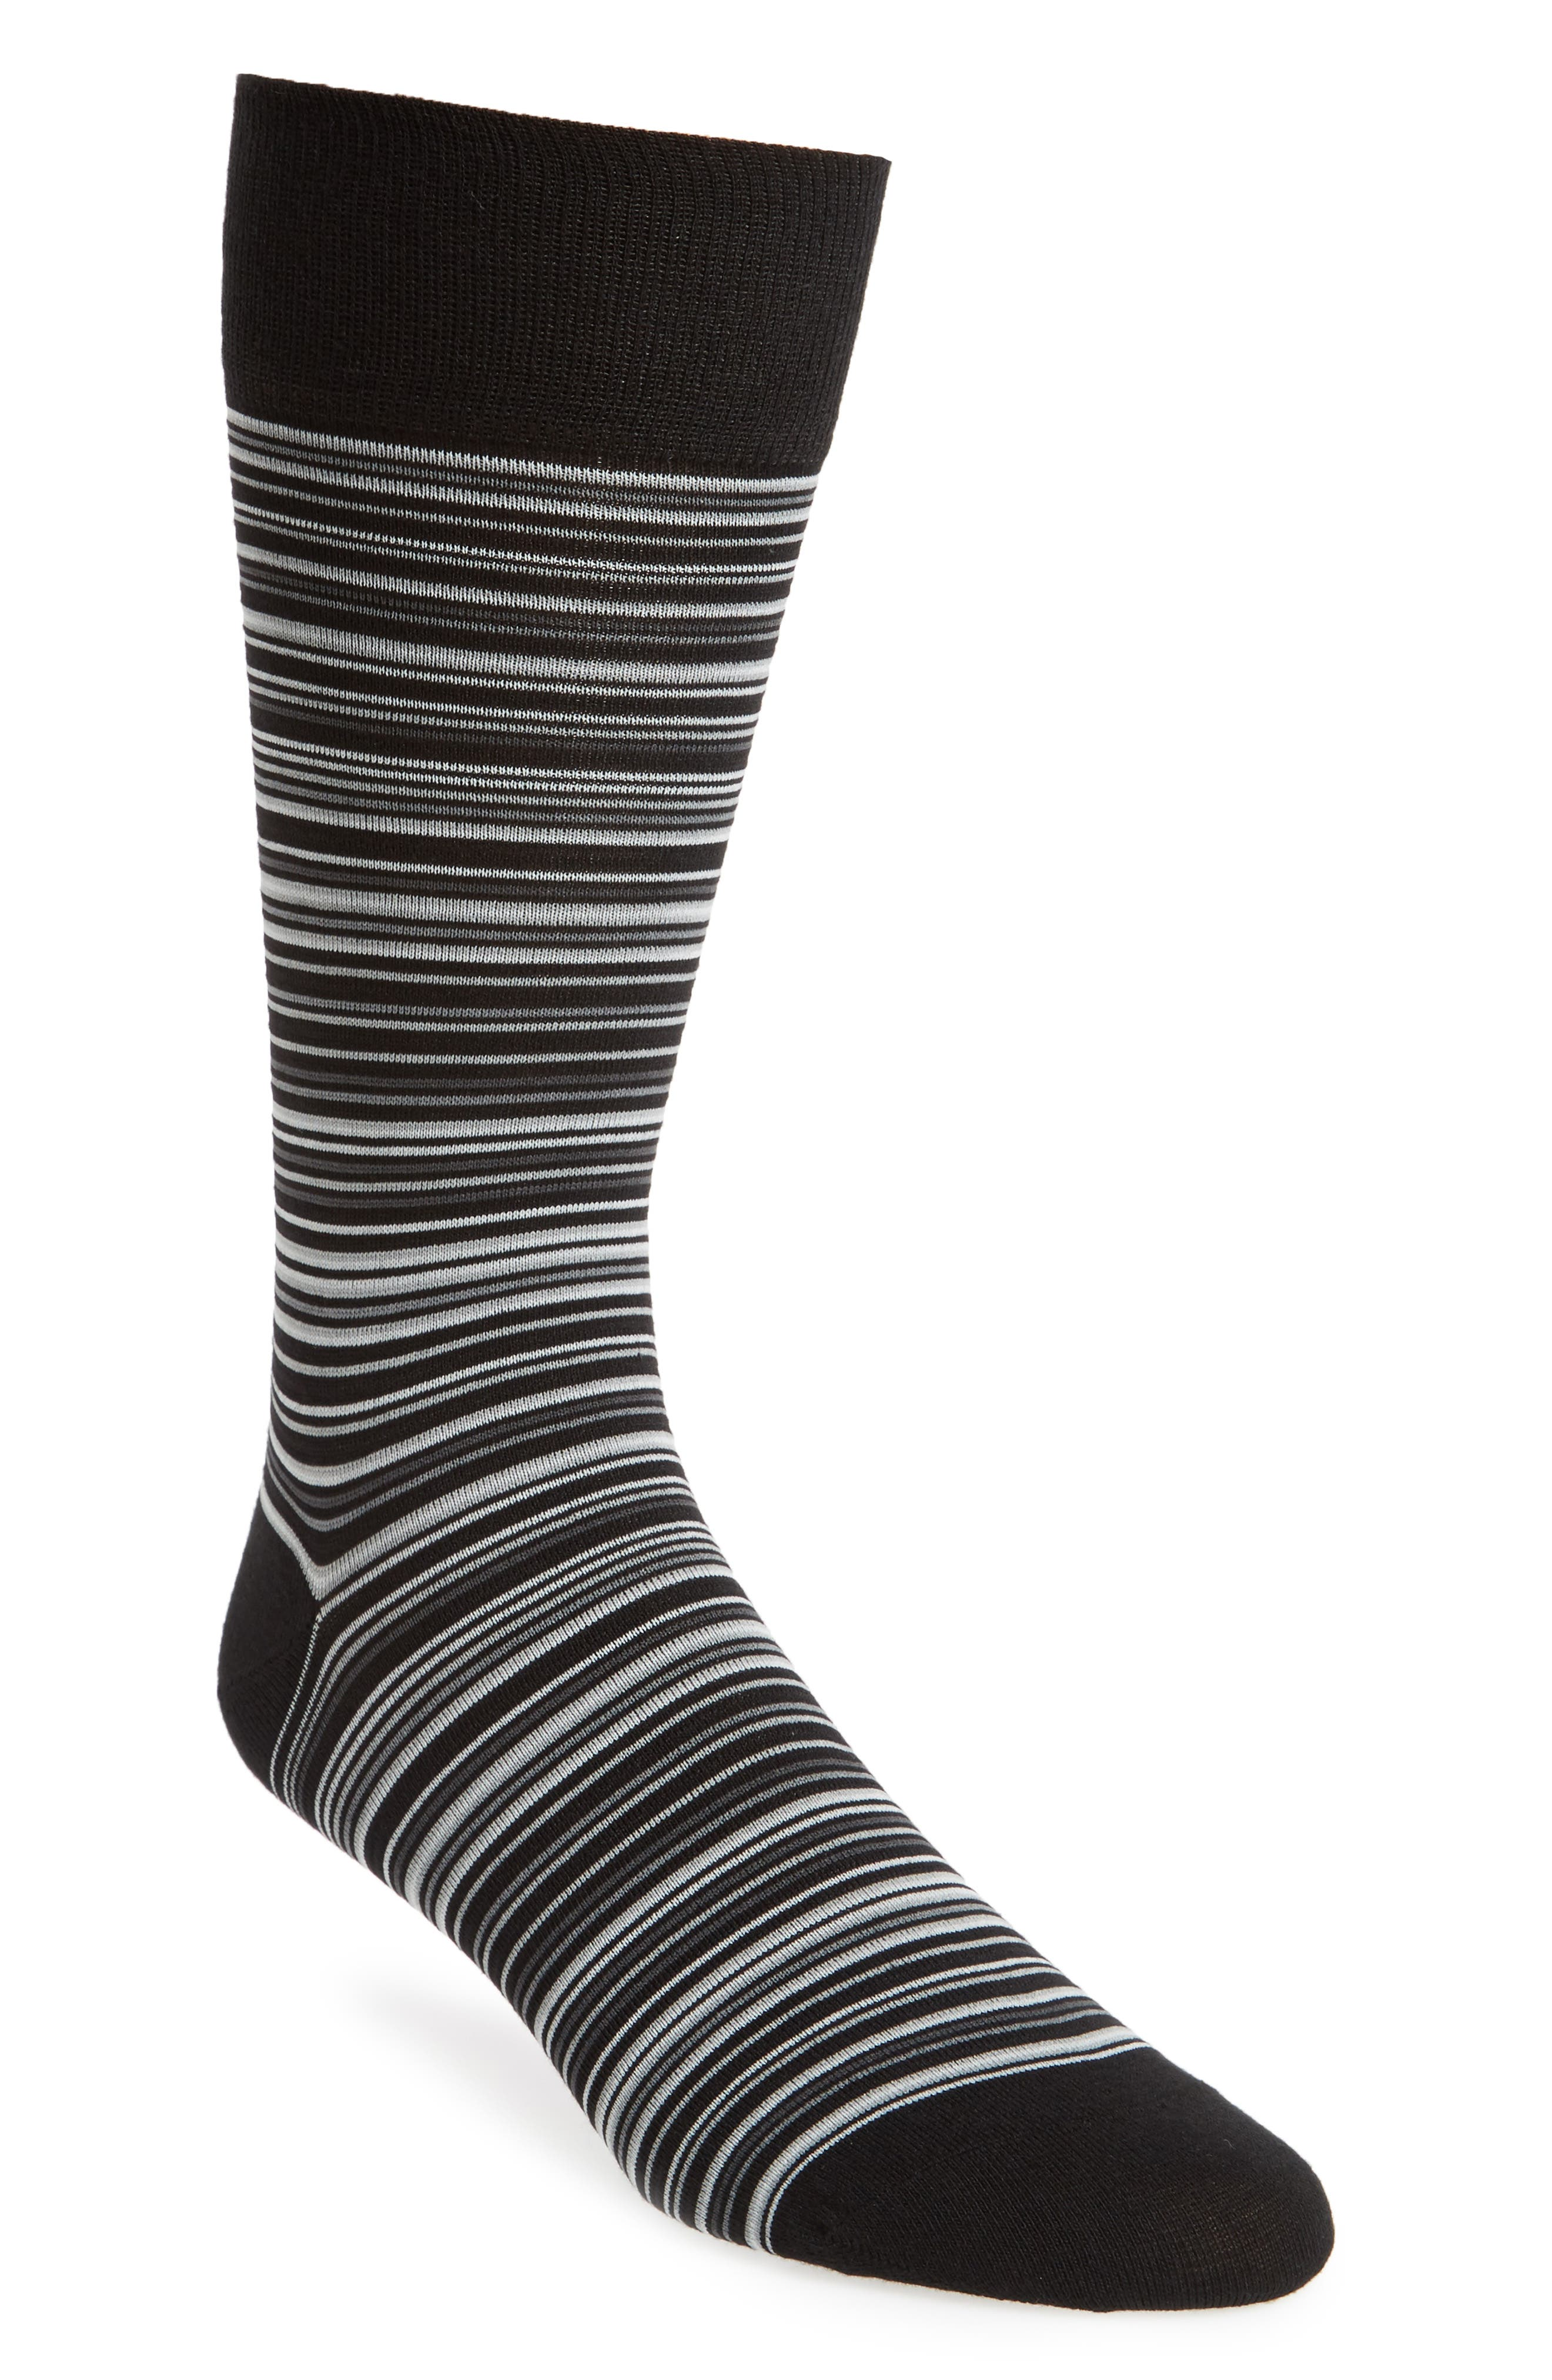 Multistripe Crew Socks,                         Main,                         color, Black/ Grey